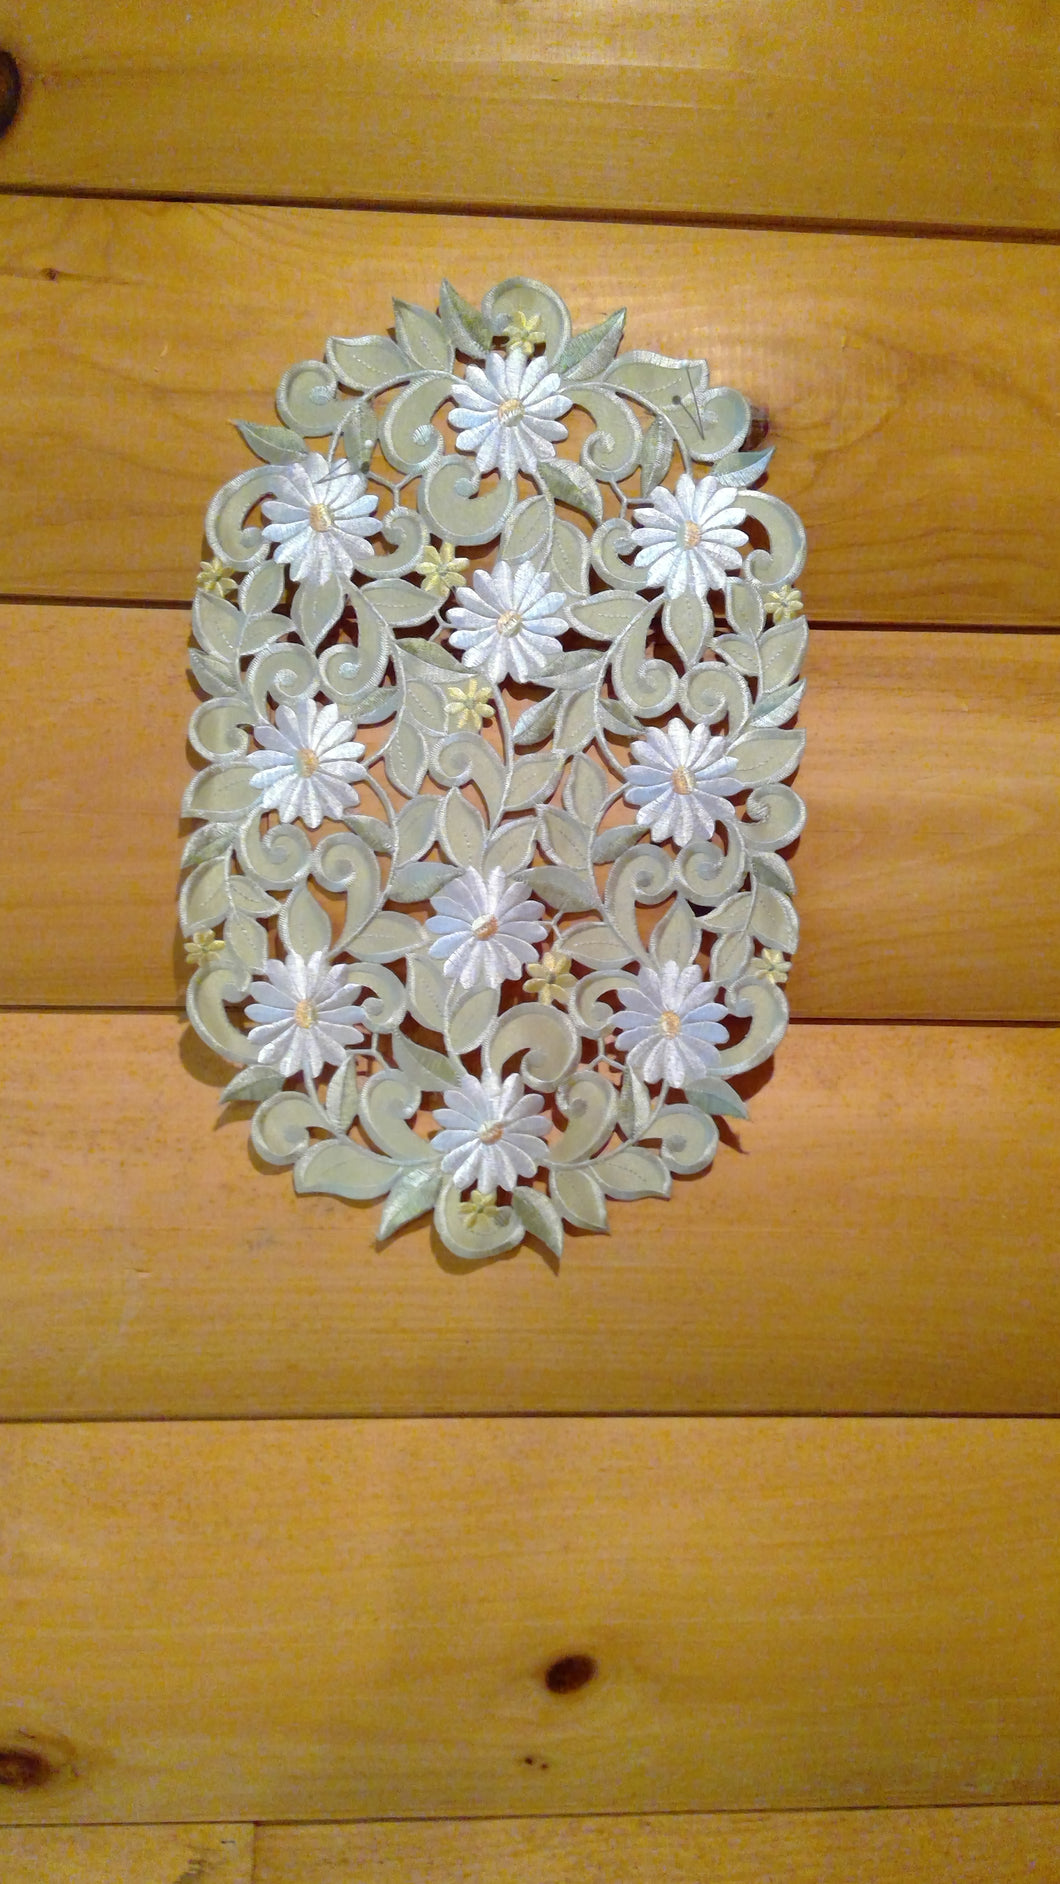 12 x 18 Oval Table Accent White Daisy Sage Green Pattern